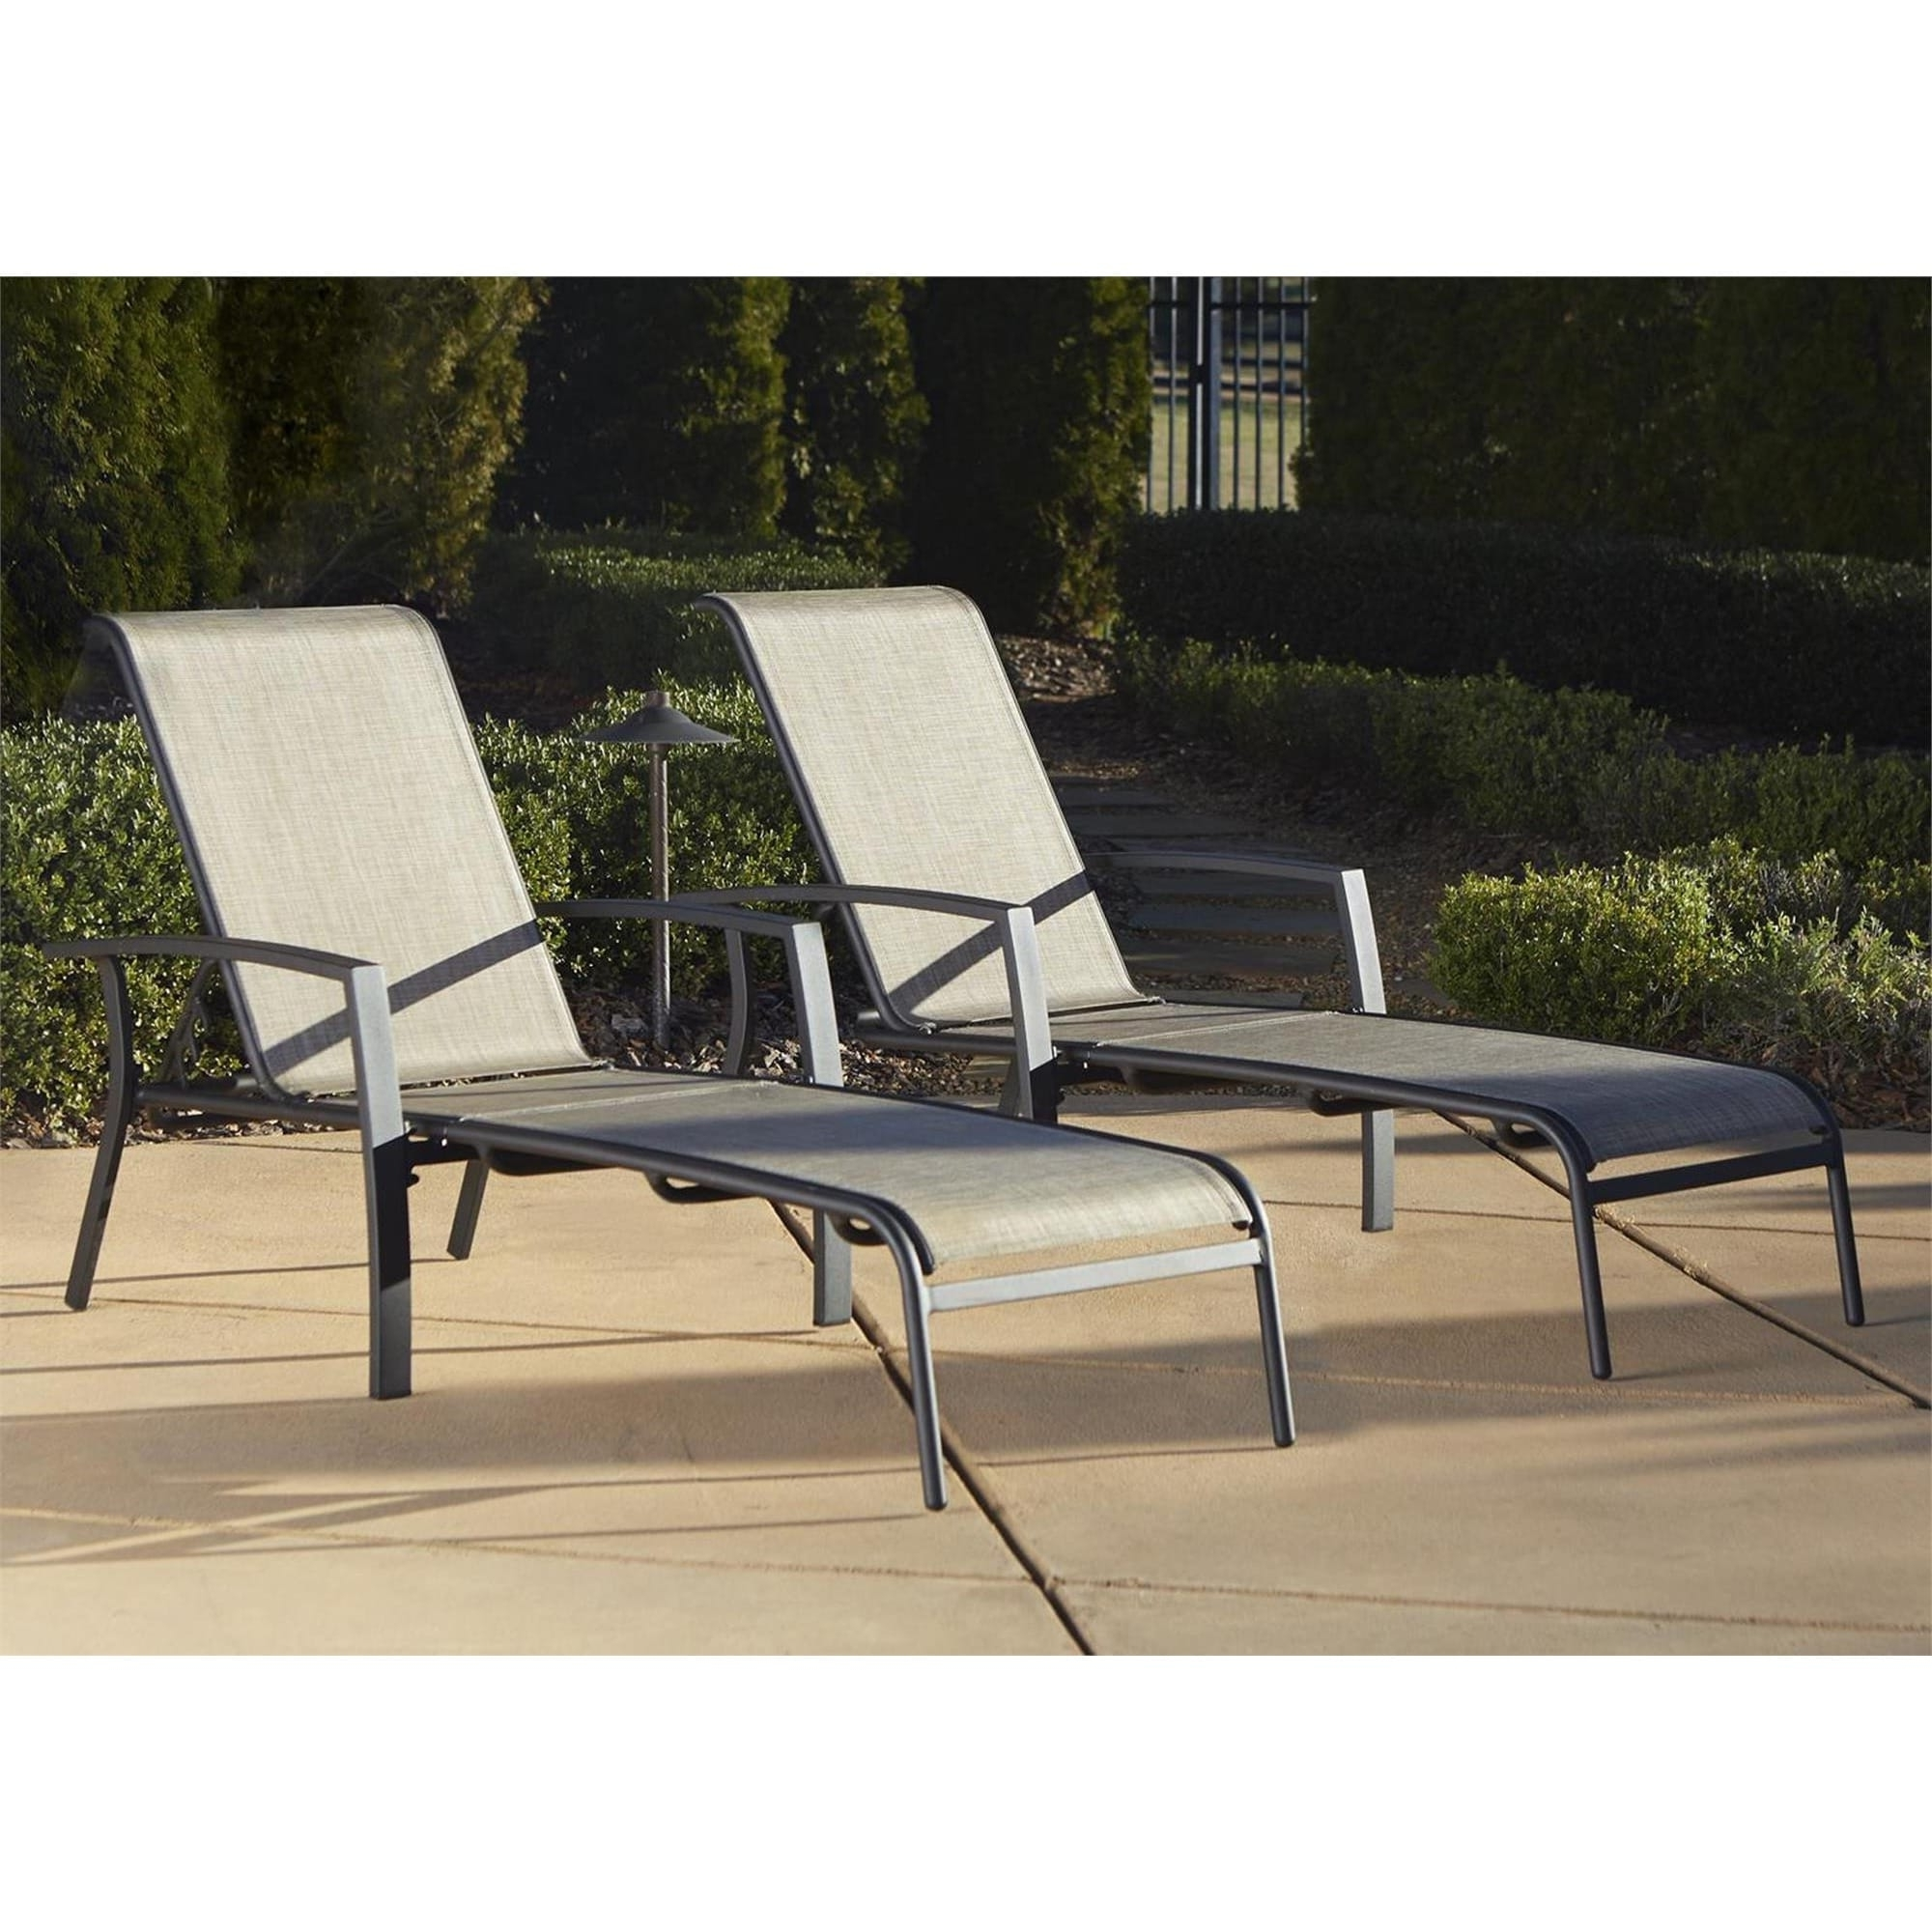 Fashionable Aluminum Chaise Lounge Outdoor Chairs Regarding Cosco Outdoor Aluminum Chaise Lounge Chair (Set Of 2) – Free (View 15 of 15)